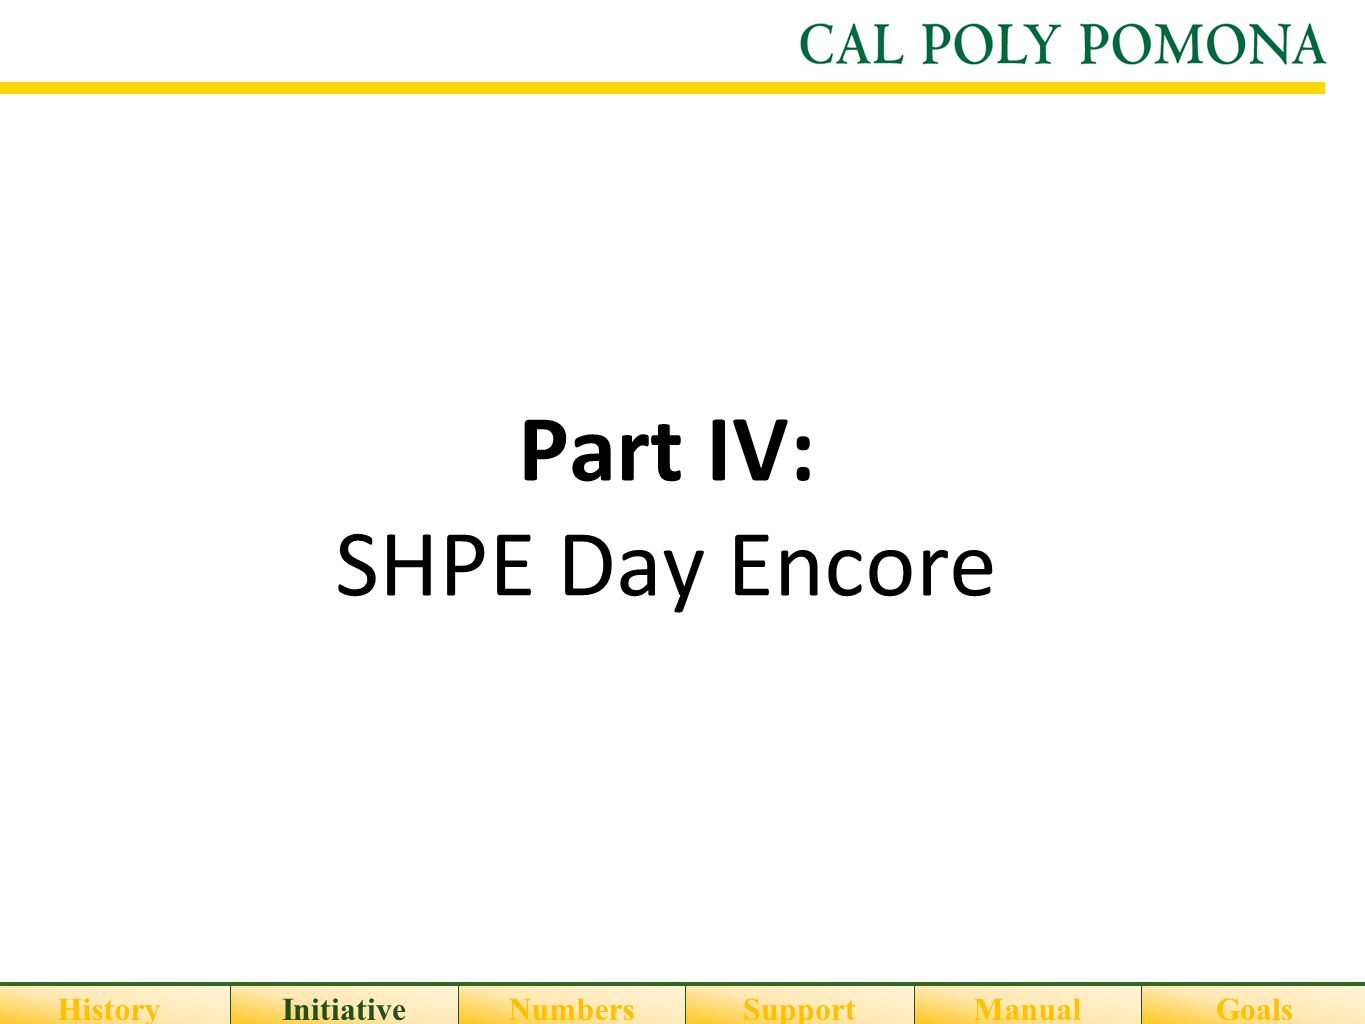 Part IV: SHPE Day Encore HistoryInitiativeNumbersSupportGoalsManual